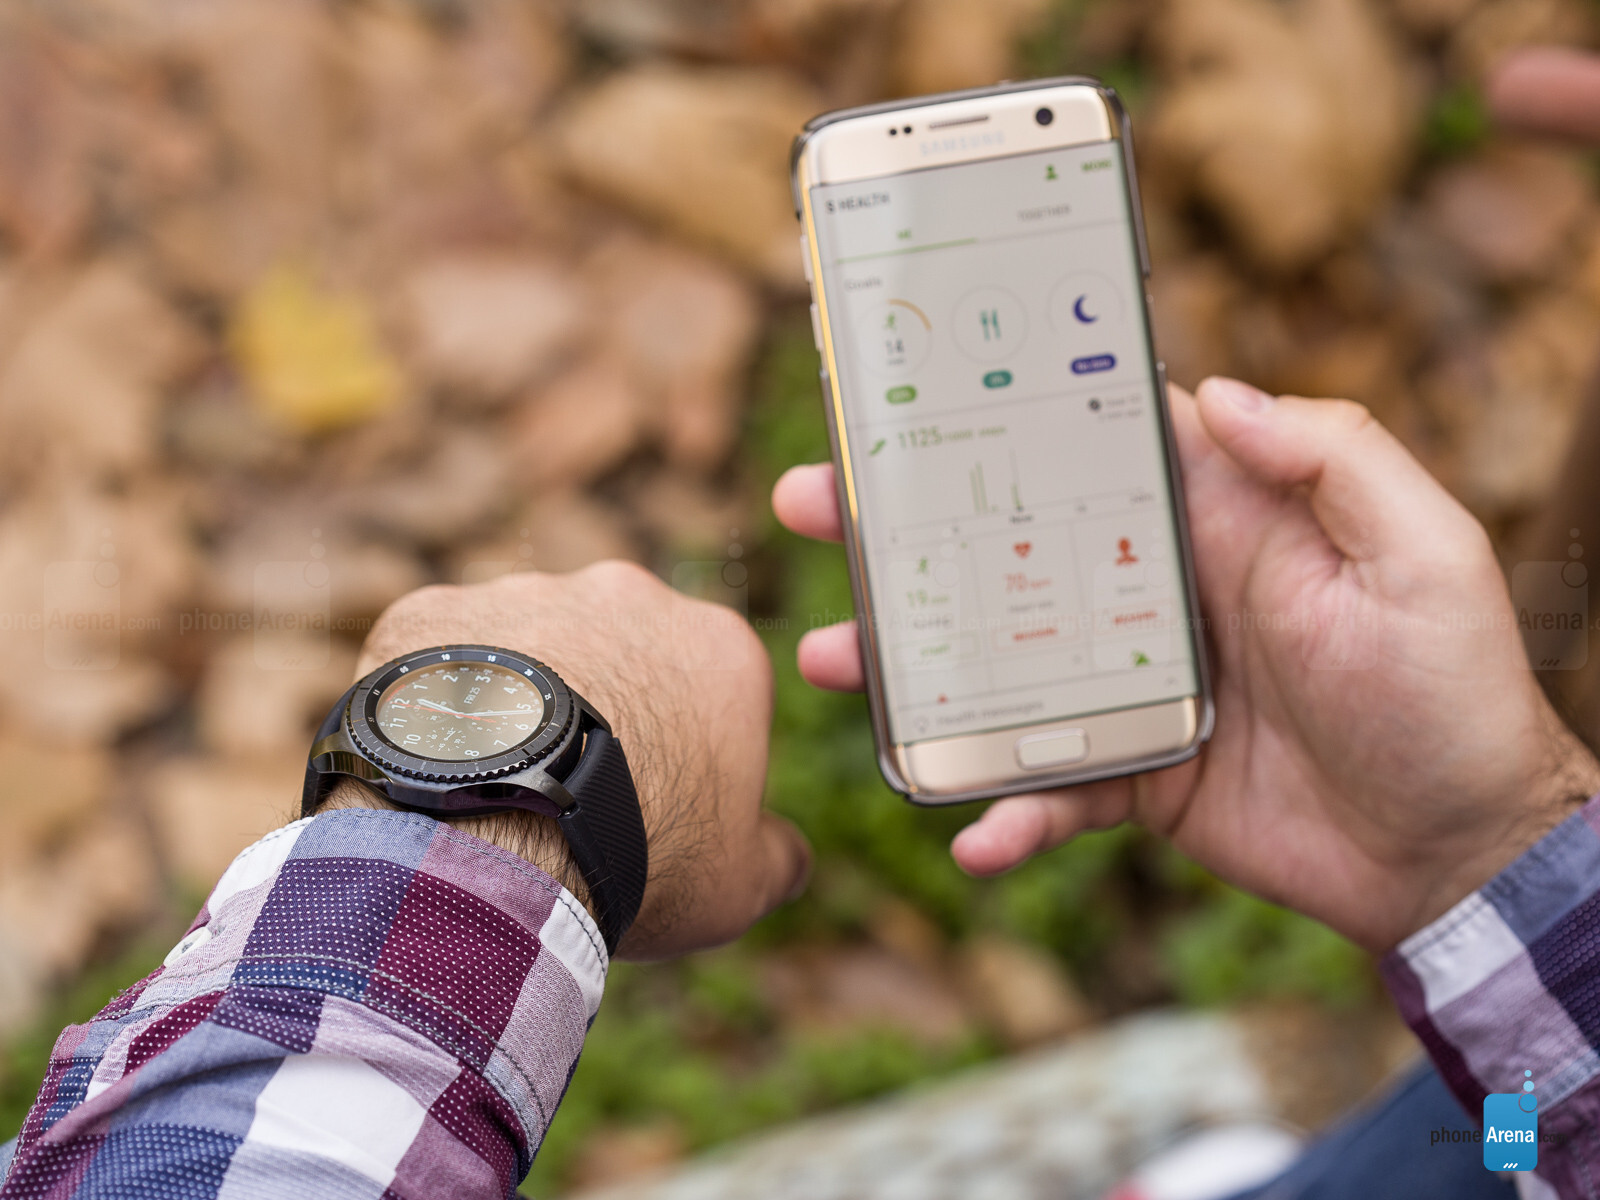 samsung gear s3 frontier smartwatch review interface and. Black Bedroom Furniture Sets. Home Design Ideas